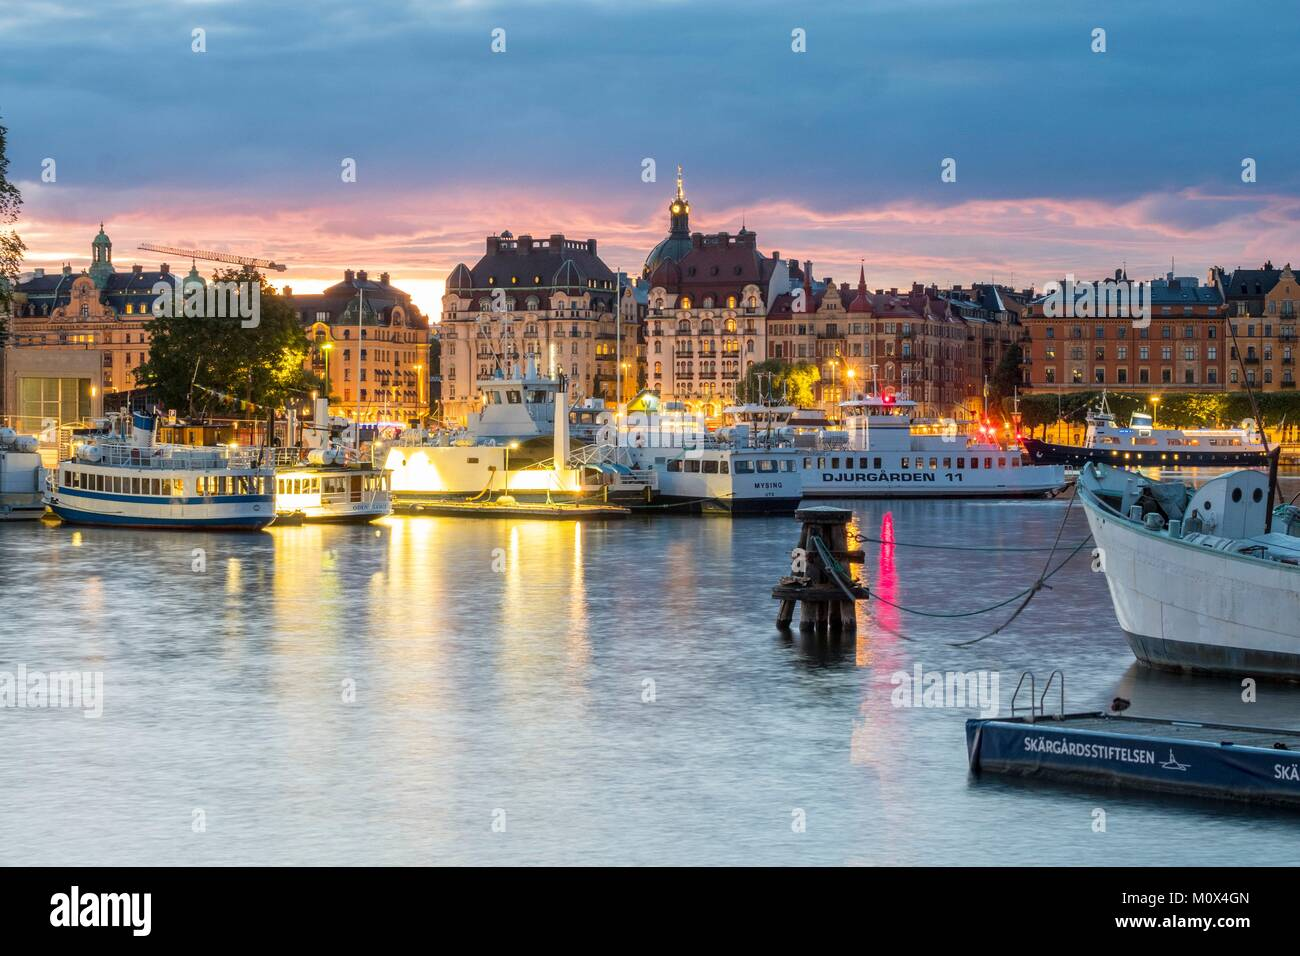 Sweden,Stockholm,Gamla Stan Island,the Old City - Stock Image